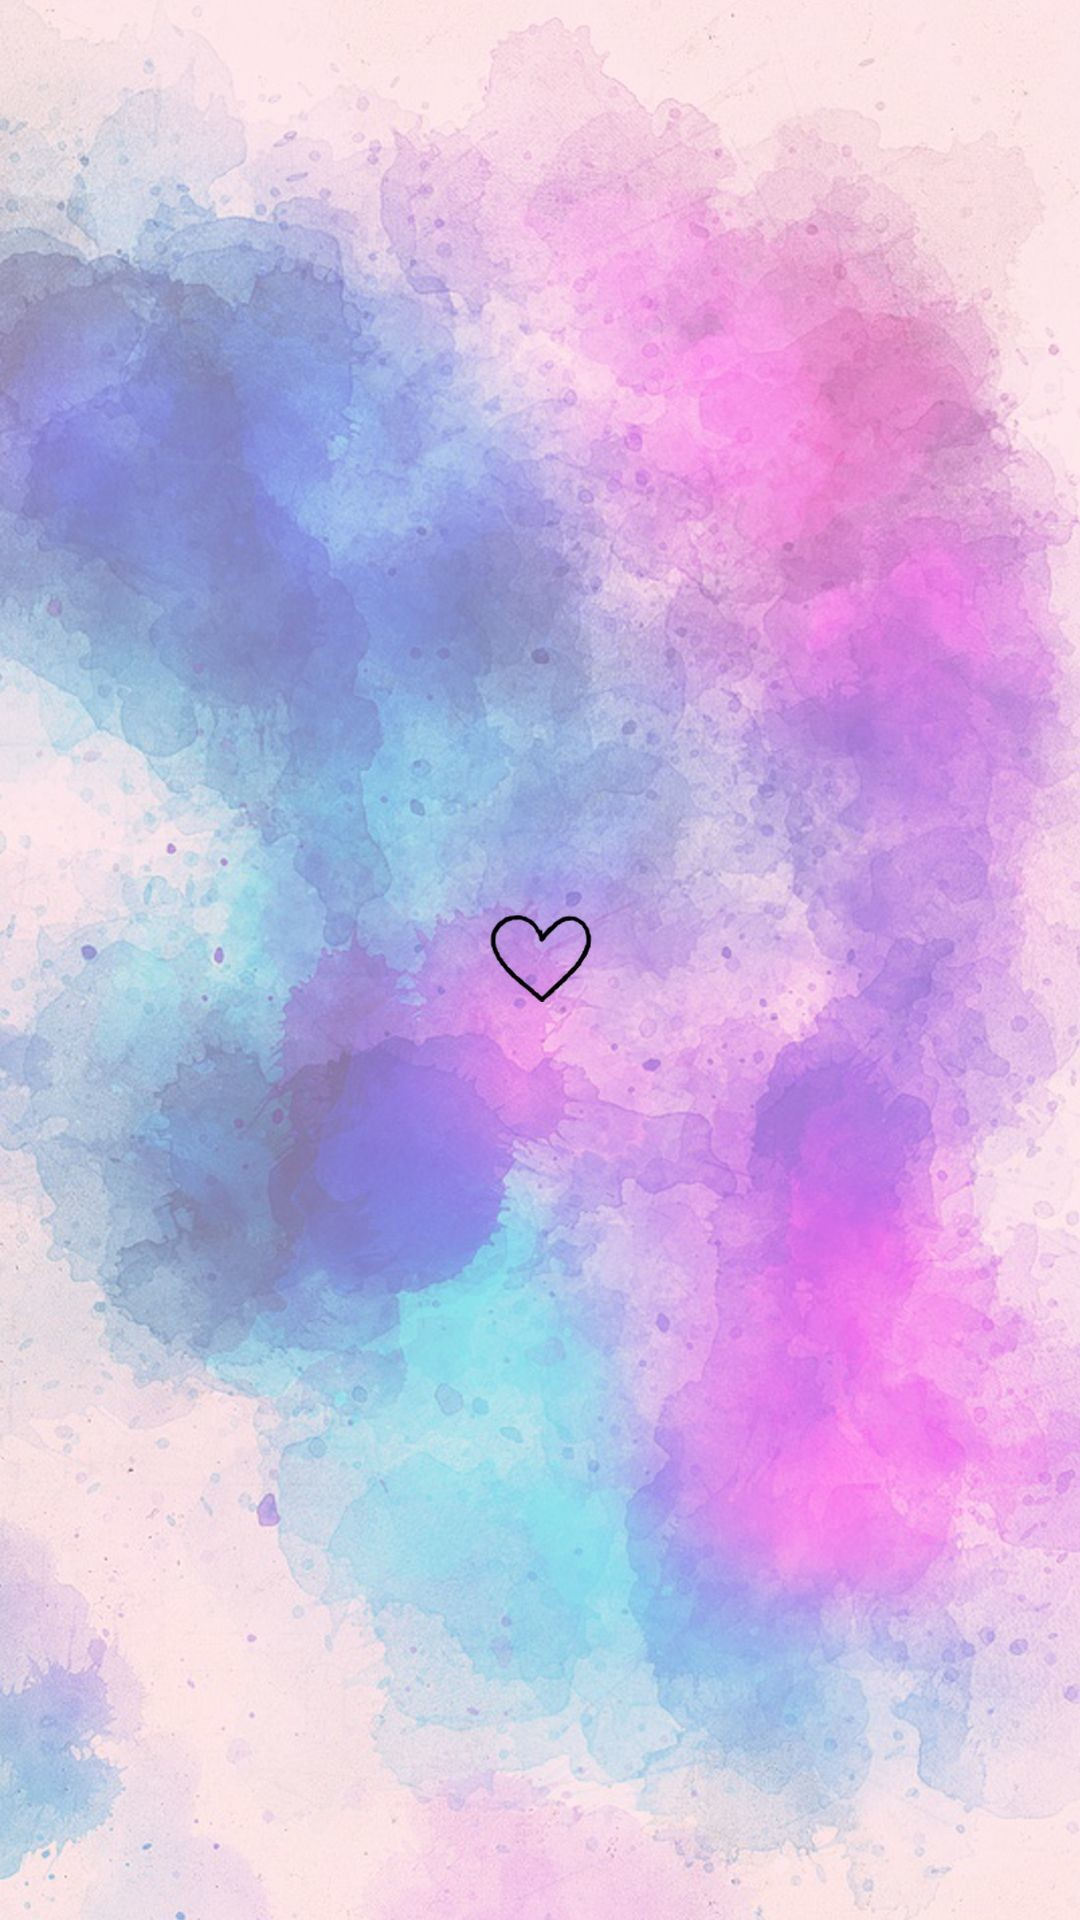 Instagram Wallpapers FREE Pictures on GreePX 1080x1920